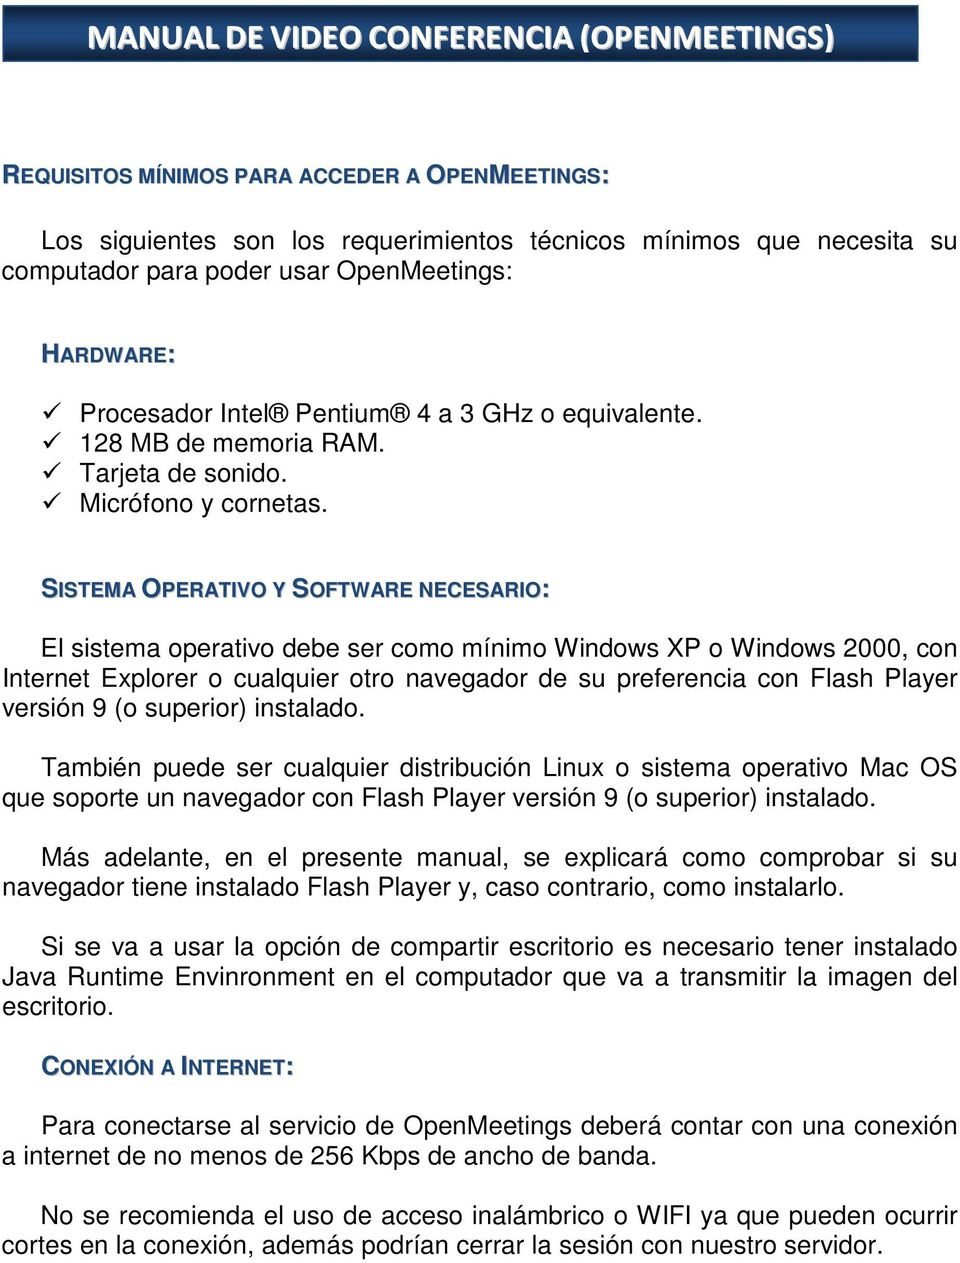 SISTEMA OPERATIVO Y SOFTWARE NECESARIO: El sistema operativo debe ser como mínimo Windows XP o Windows 2000, con Internet Explorer o cualquier otro navegador de su preferencia con Flash Player